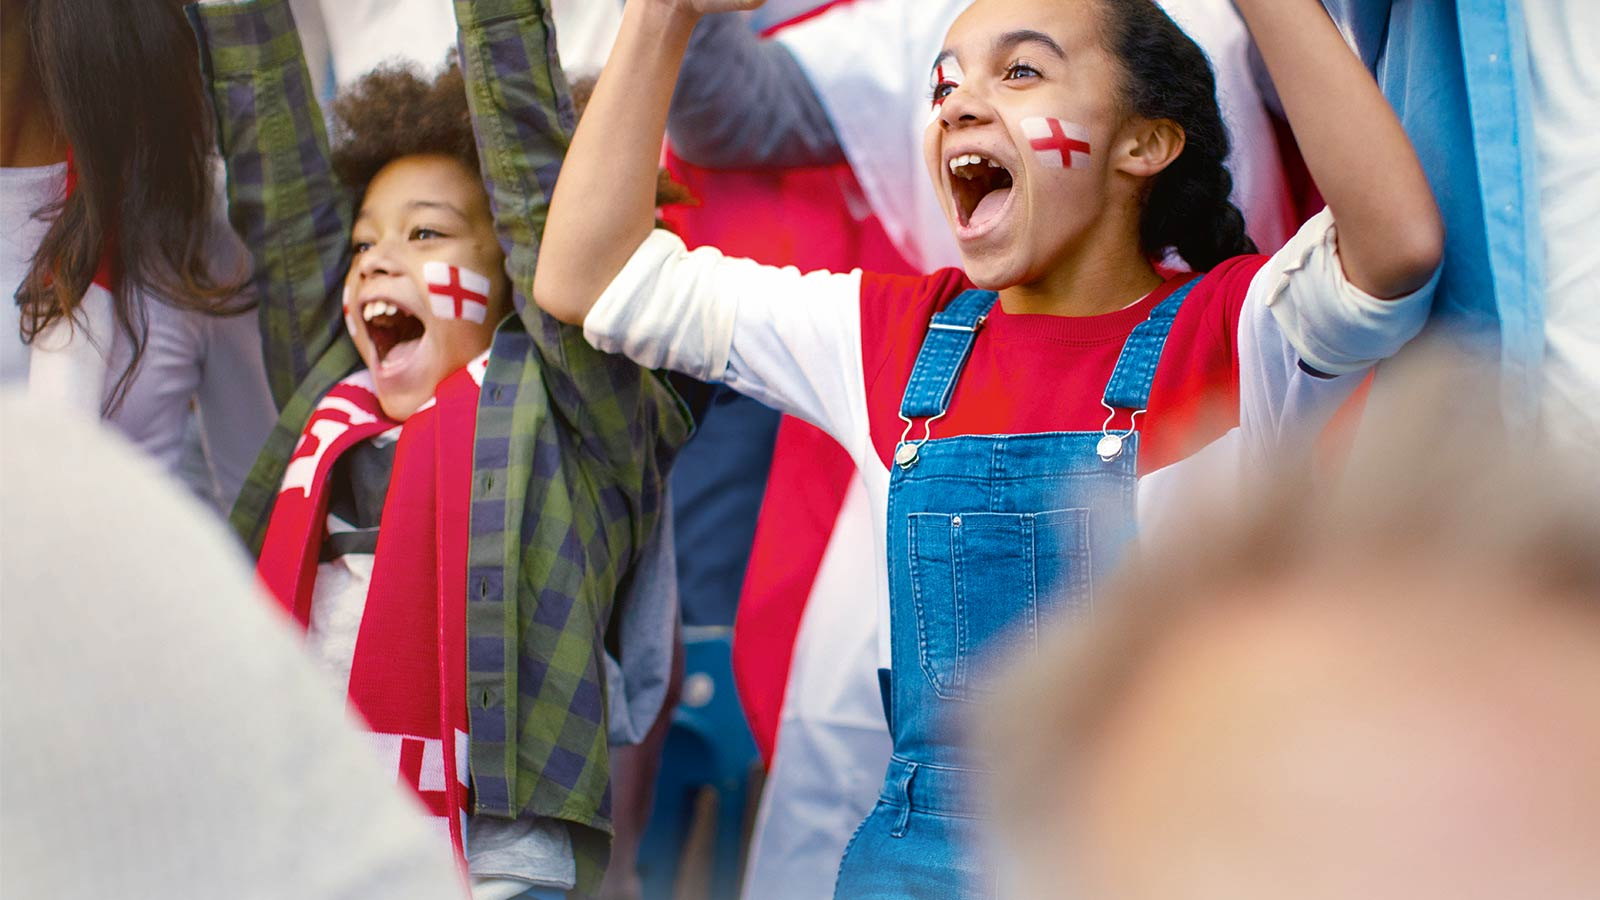 Kids cheer on the England football team at the FIFA Women's World Cup.